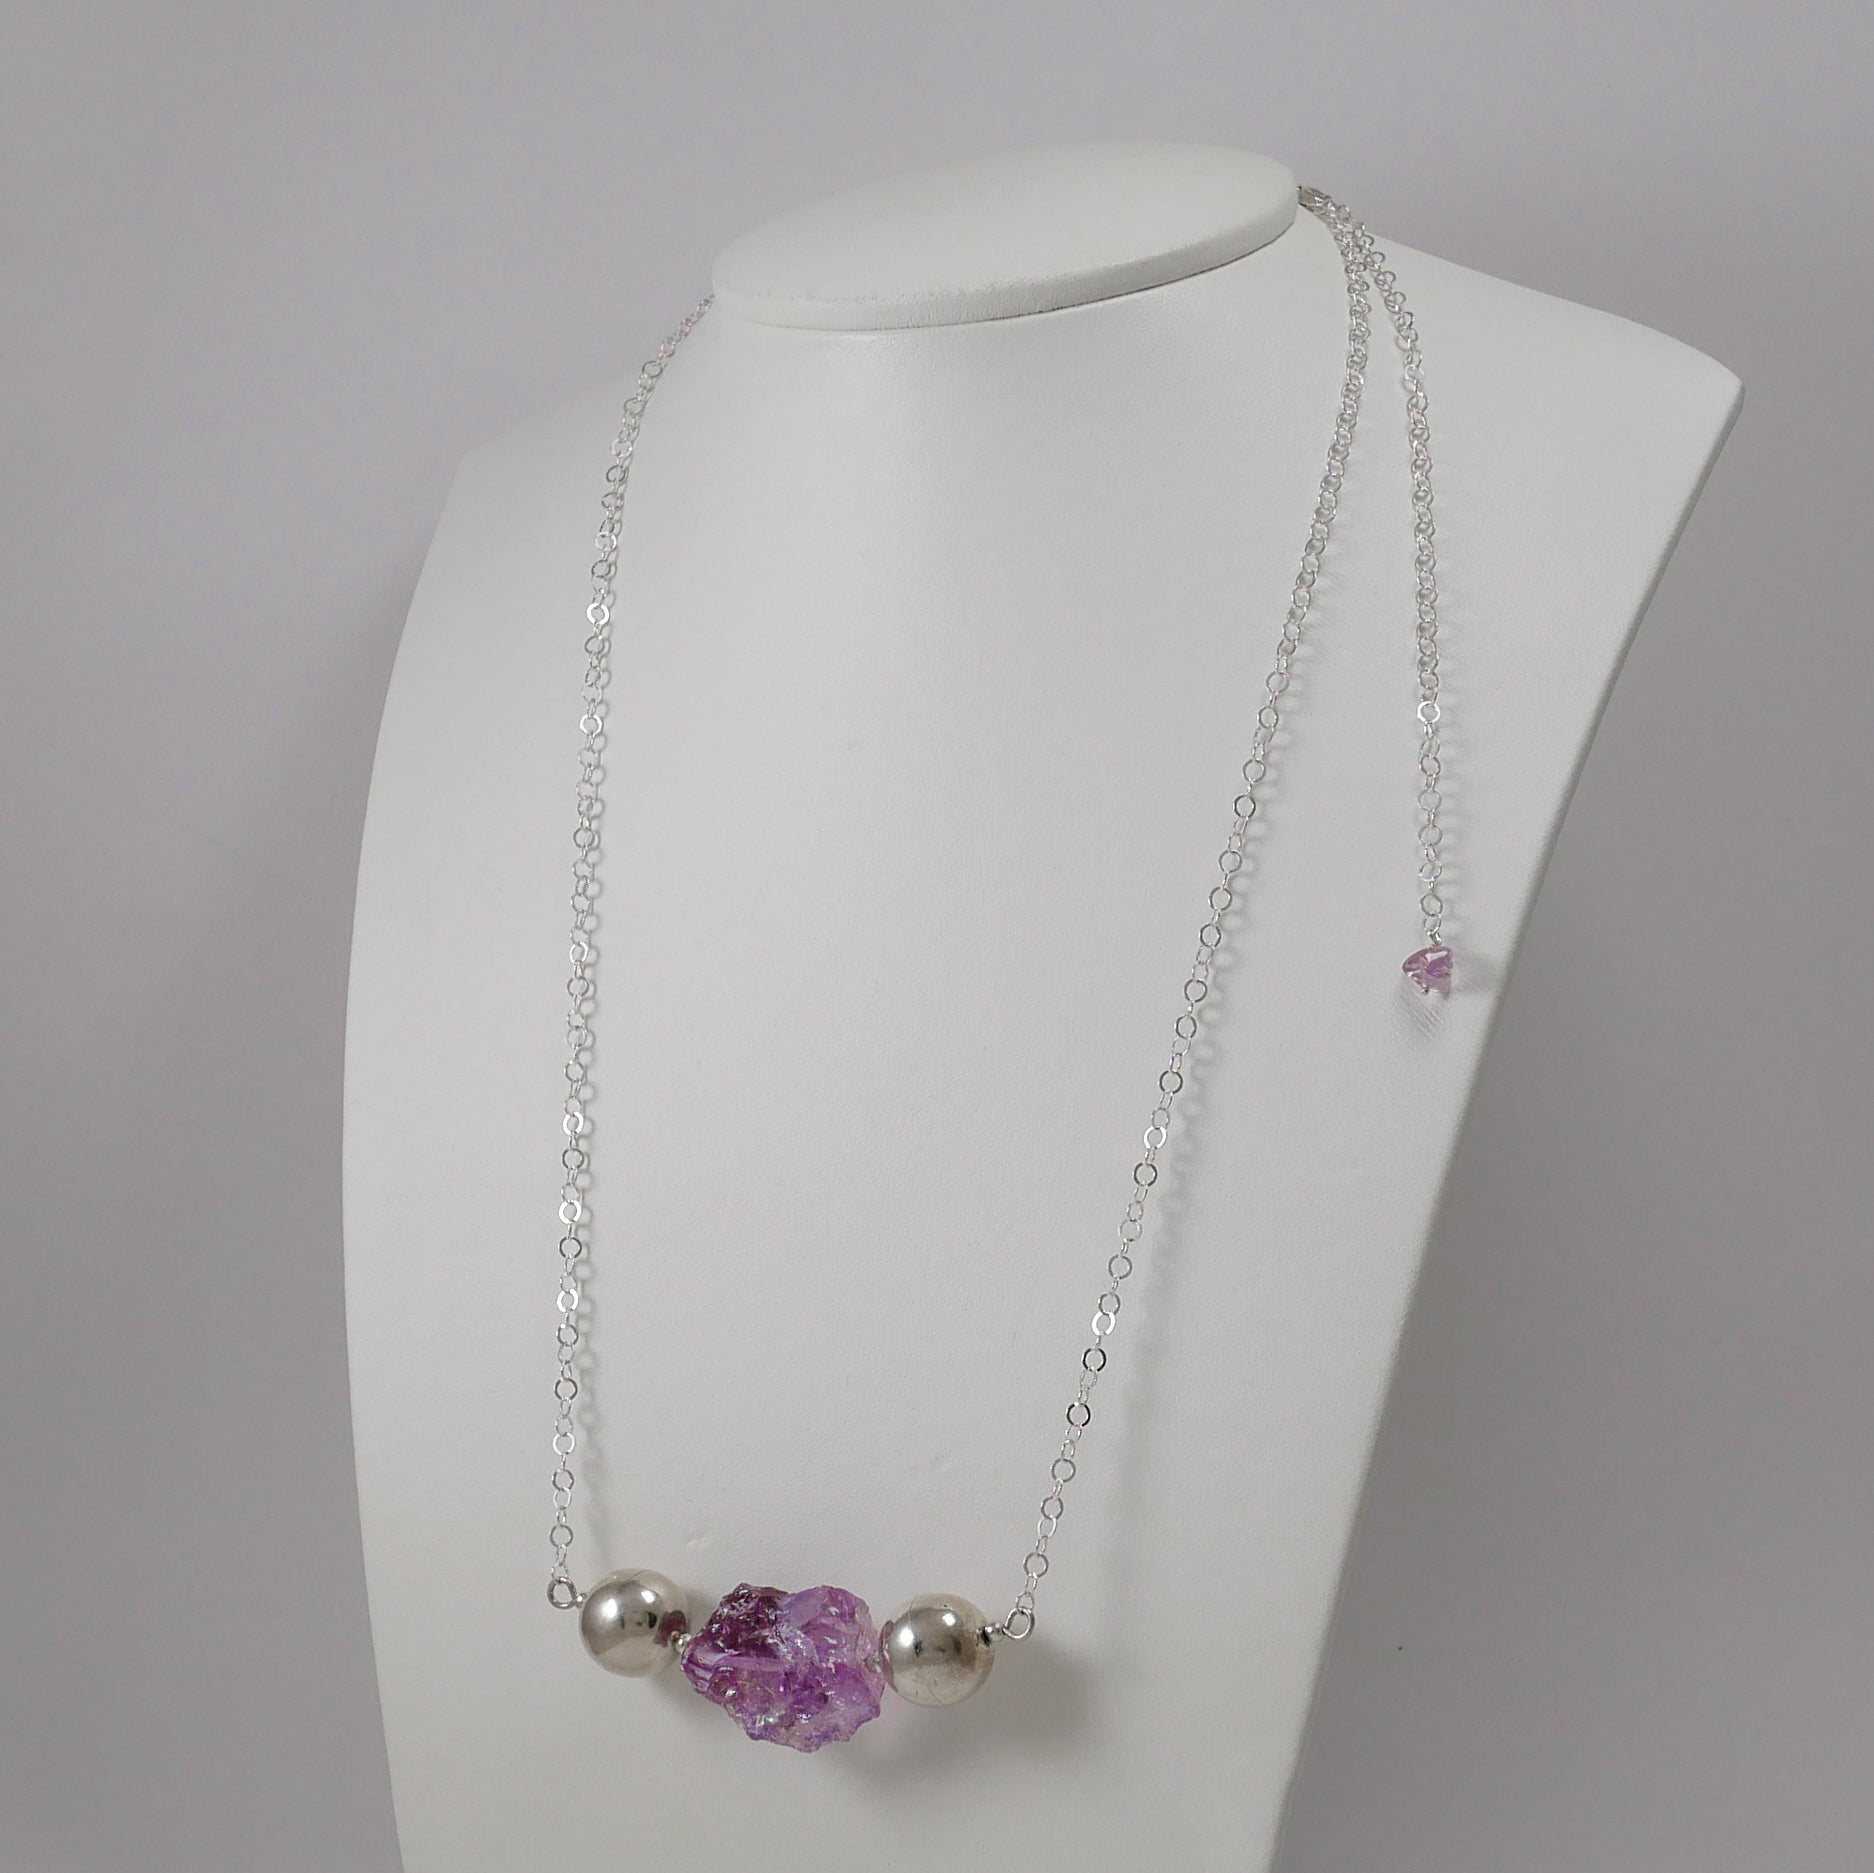 Raw Amethyst and Sterling Silver Necklace - Katerina Roukouna